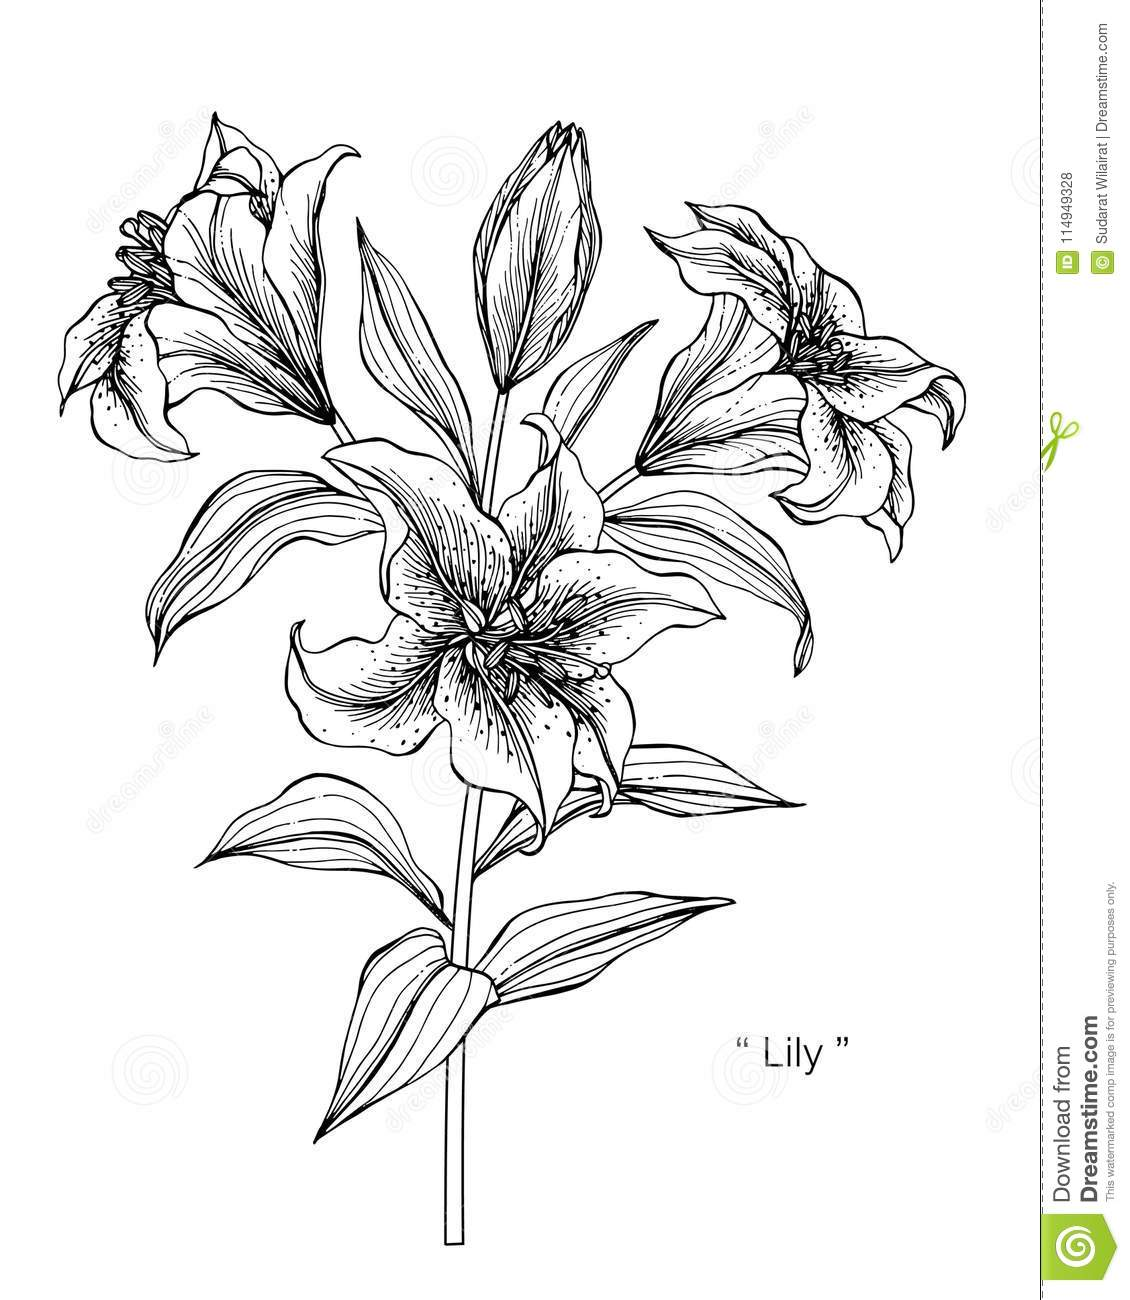 Lily Flower Drawing Illustration Black And White With Line Art